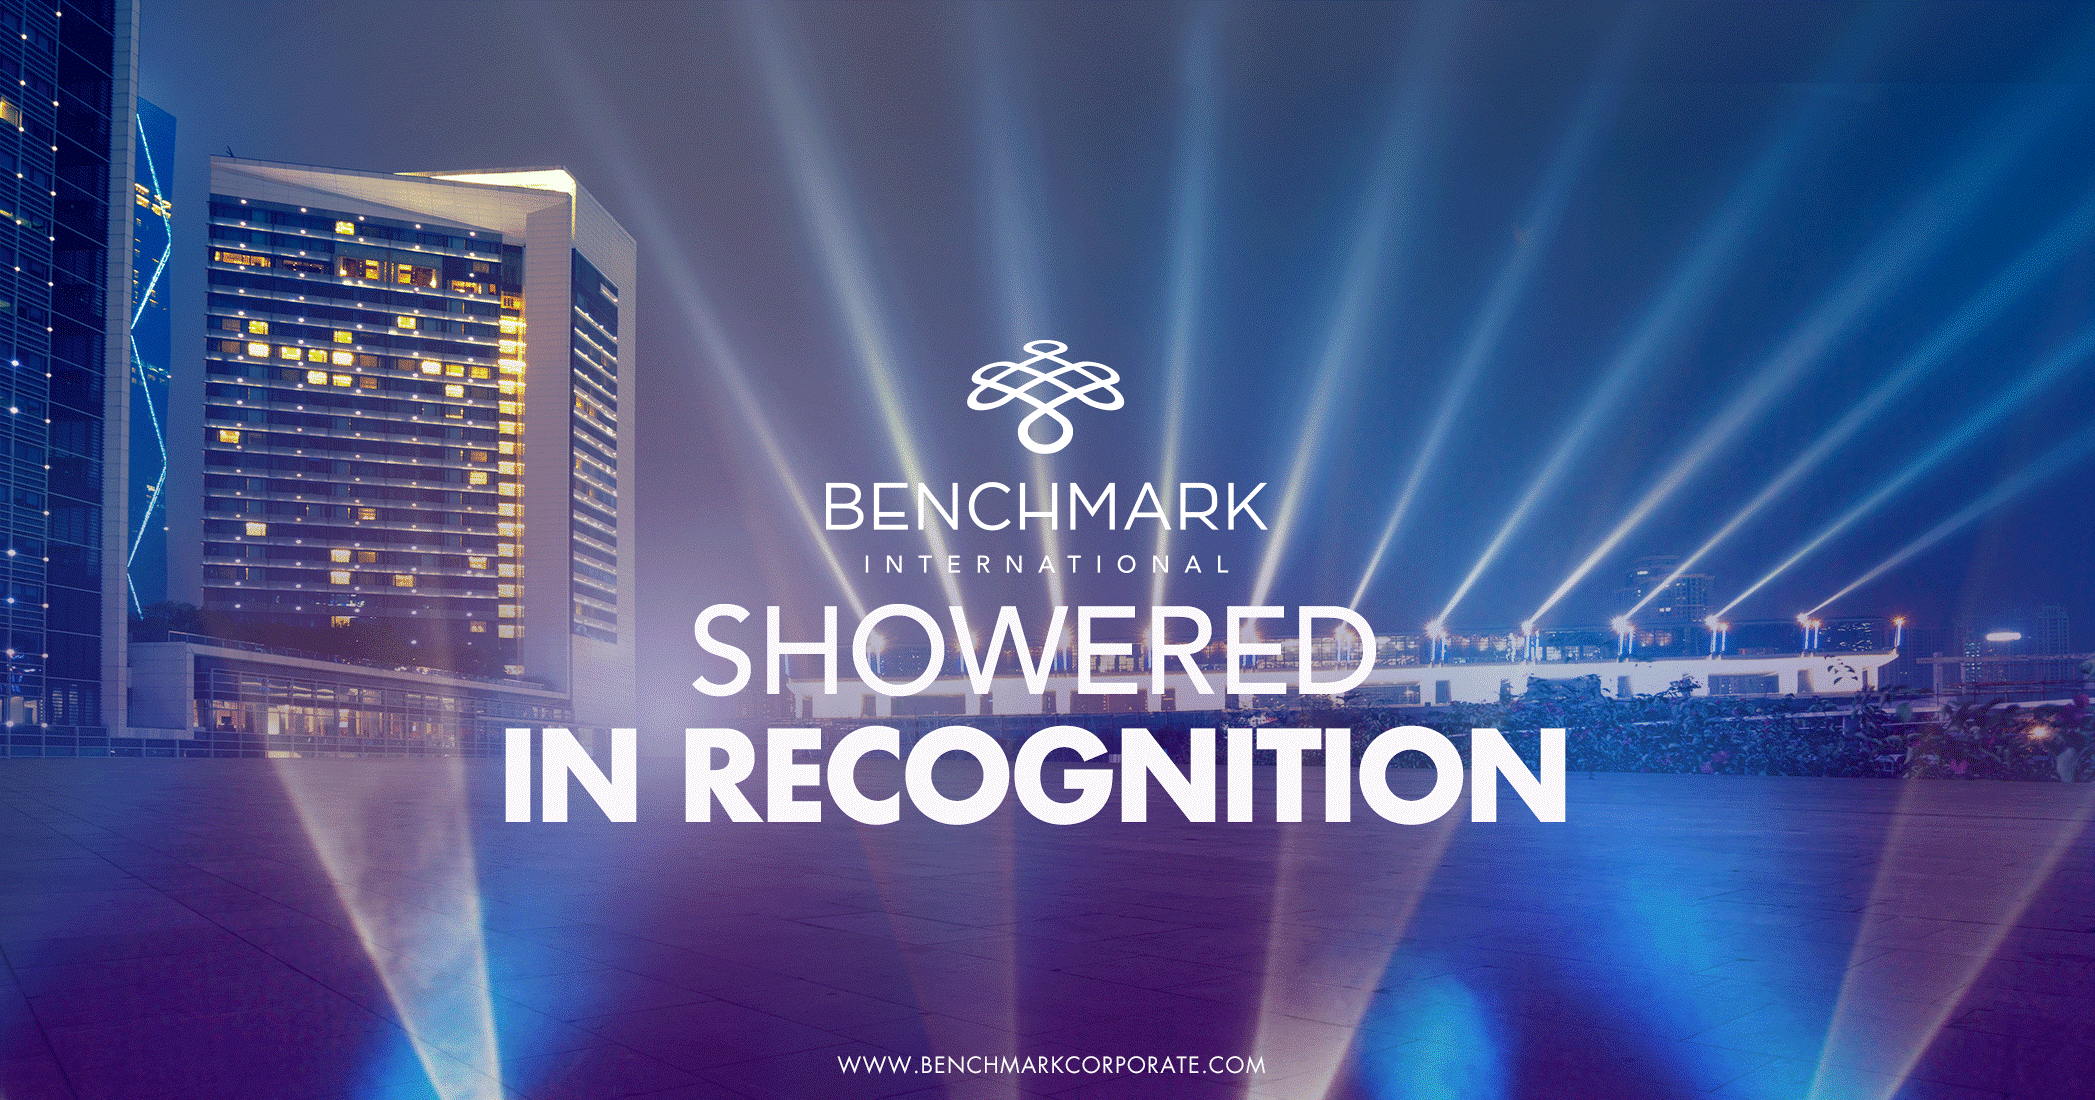 Benchmark International is Showered in Recognition